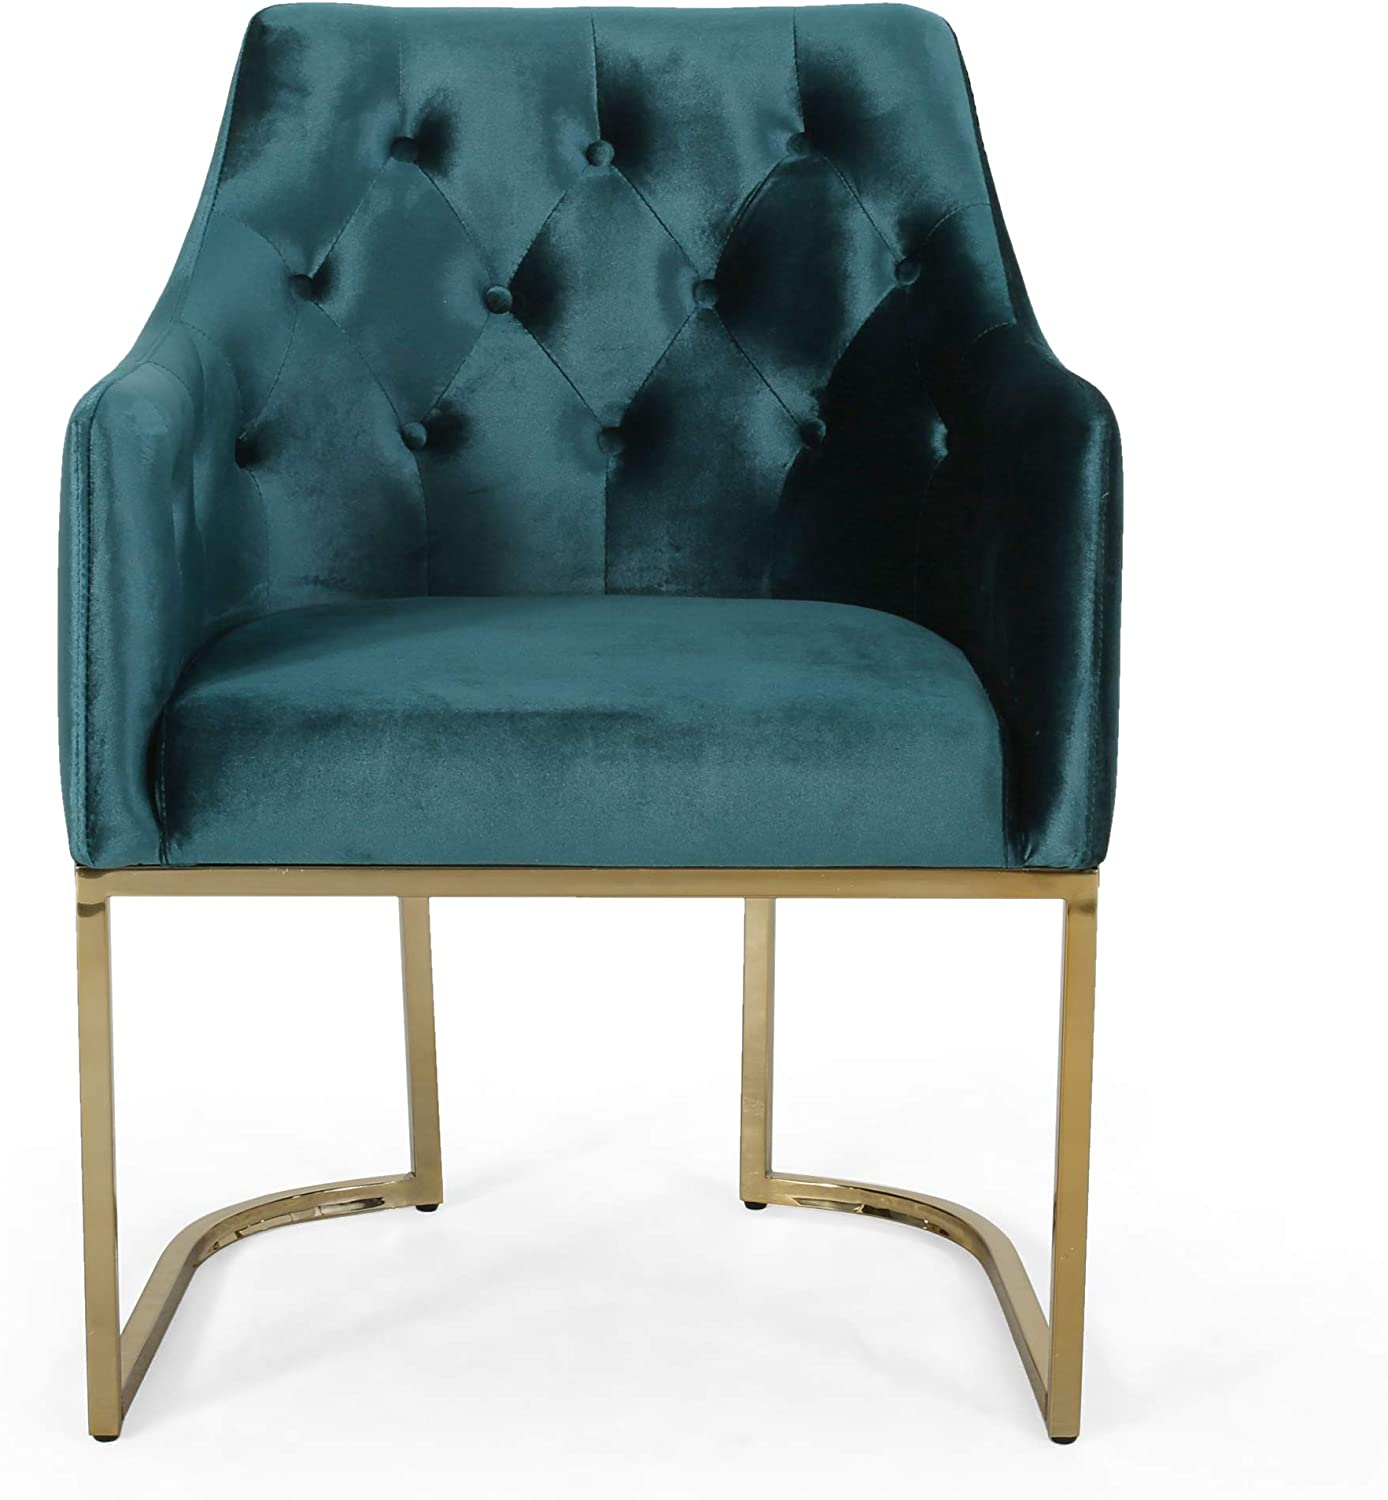 Christopher Knight Home Fern Modern Tufted Glam Accent Chair with Velvet Cushions and U-Shaped Base, Teal Finish, Black, Rose Gold